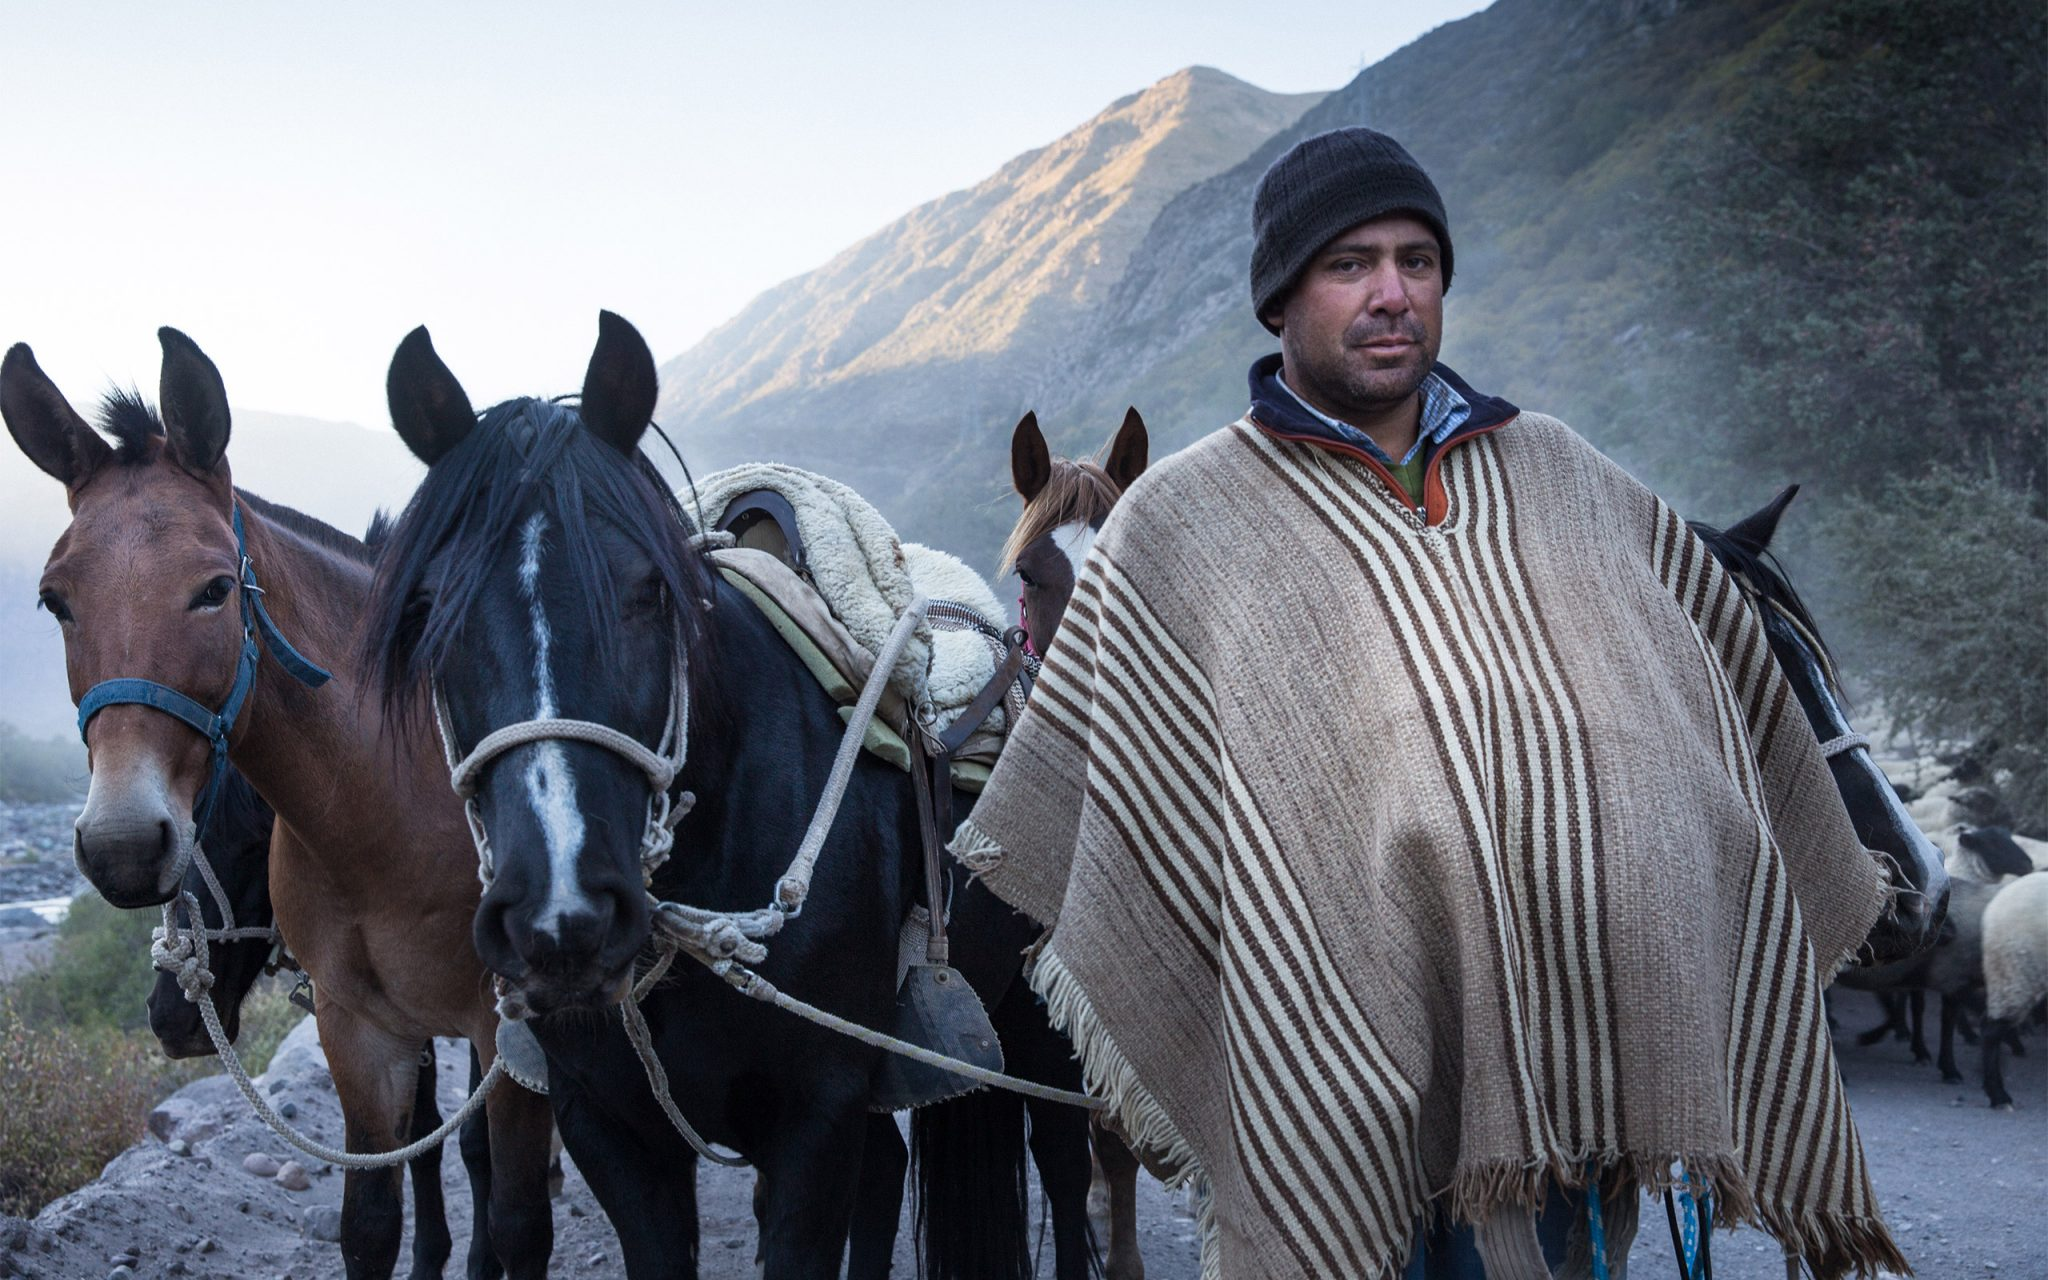 Portrait of 'Huaso Chileno' Chilean Cowboy,Andes Mountains. Shepherding a flock of 1500 sheep. Carey Marks Photography